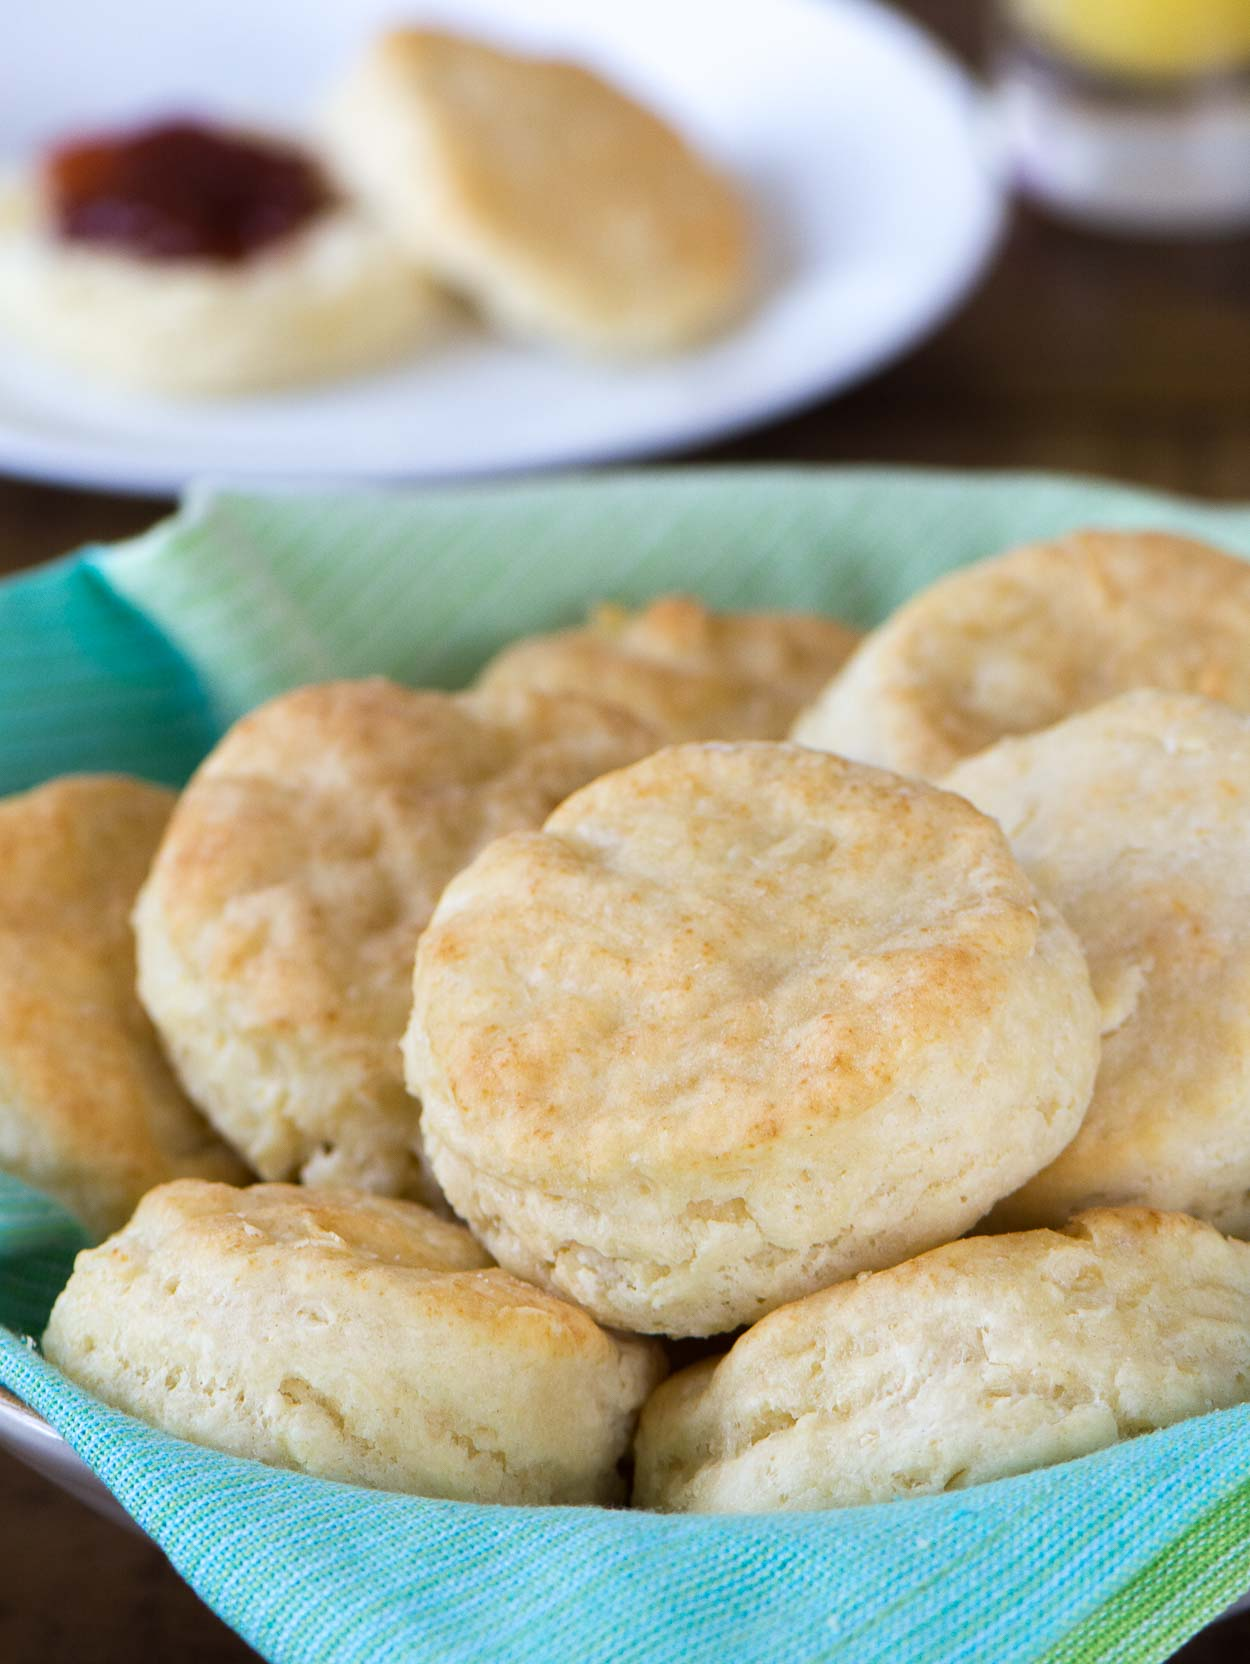 Buttermilk Biscuits made from scratch